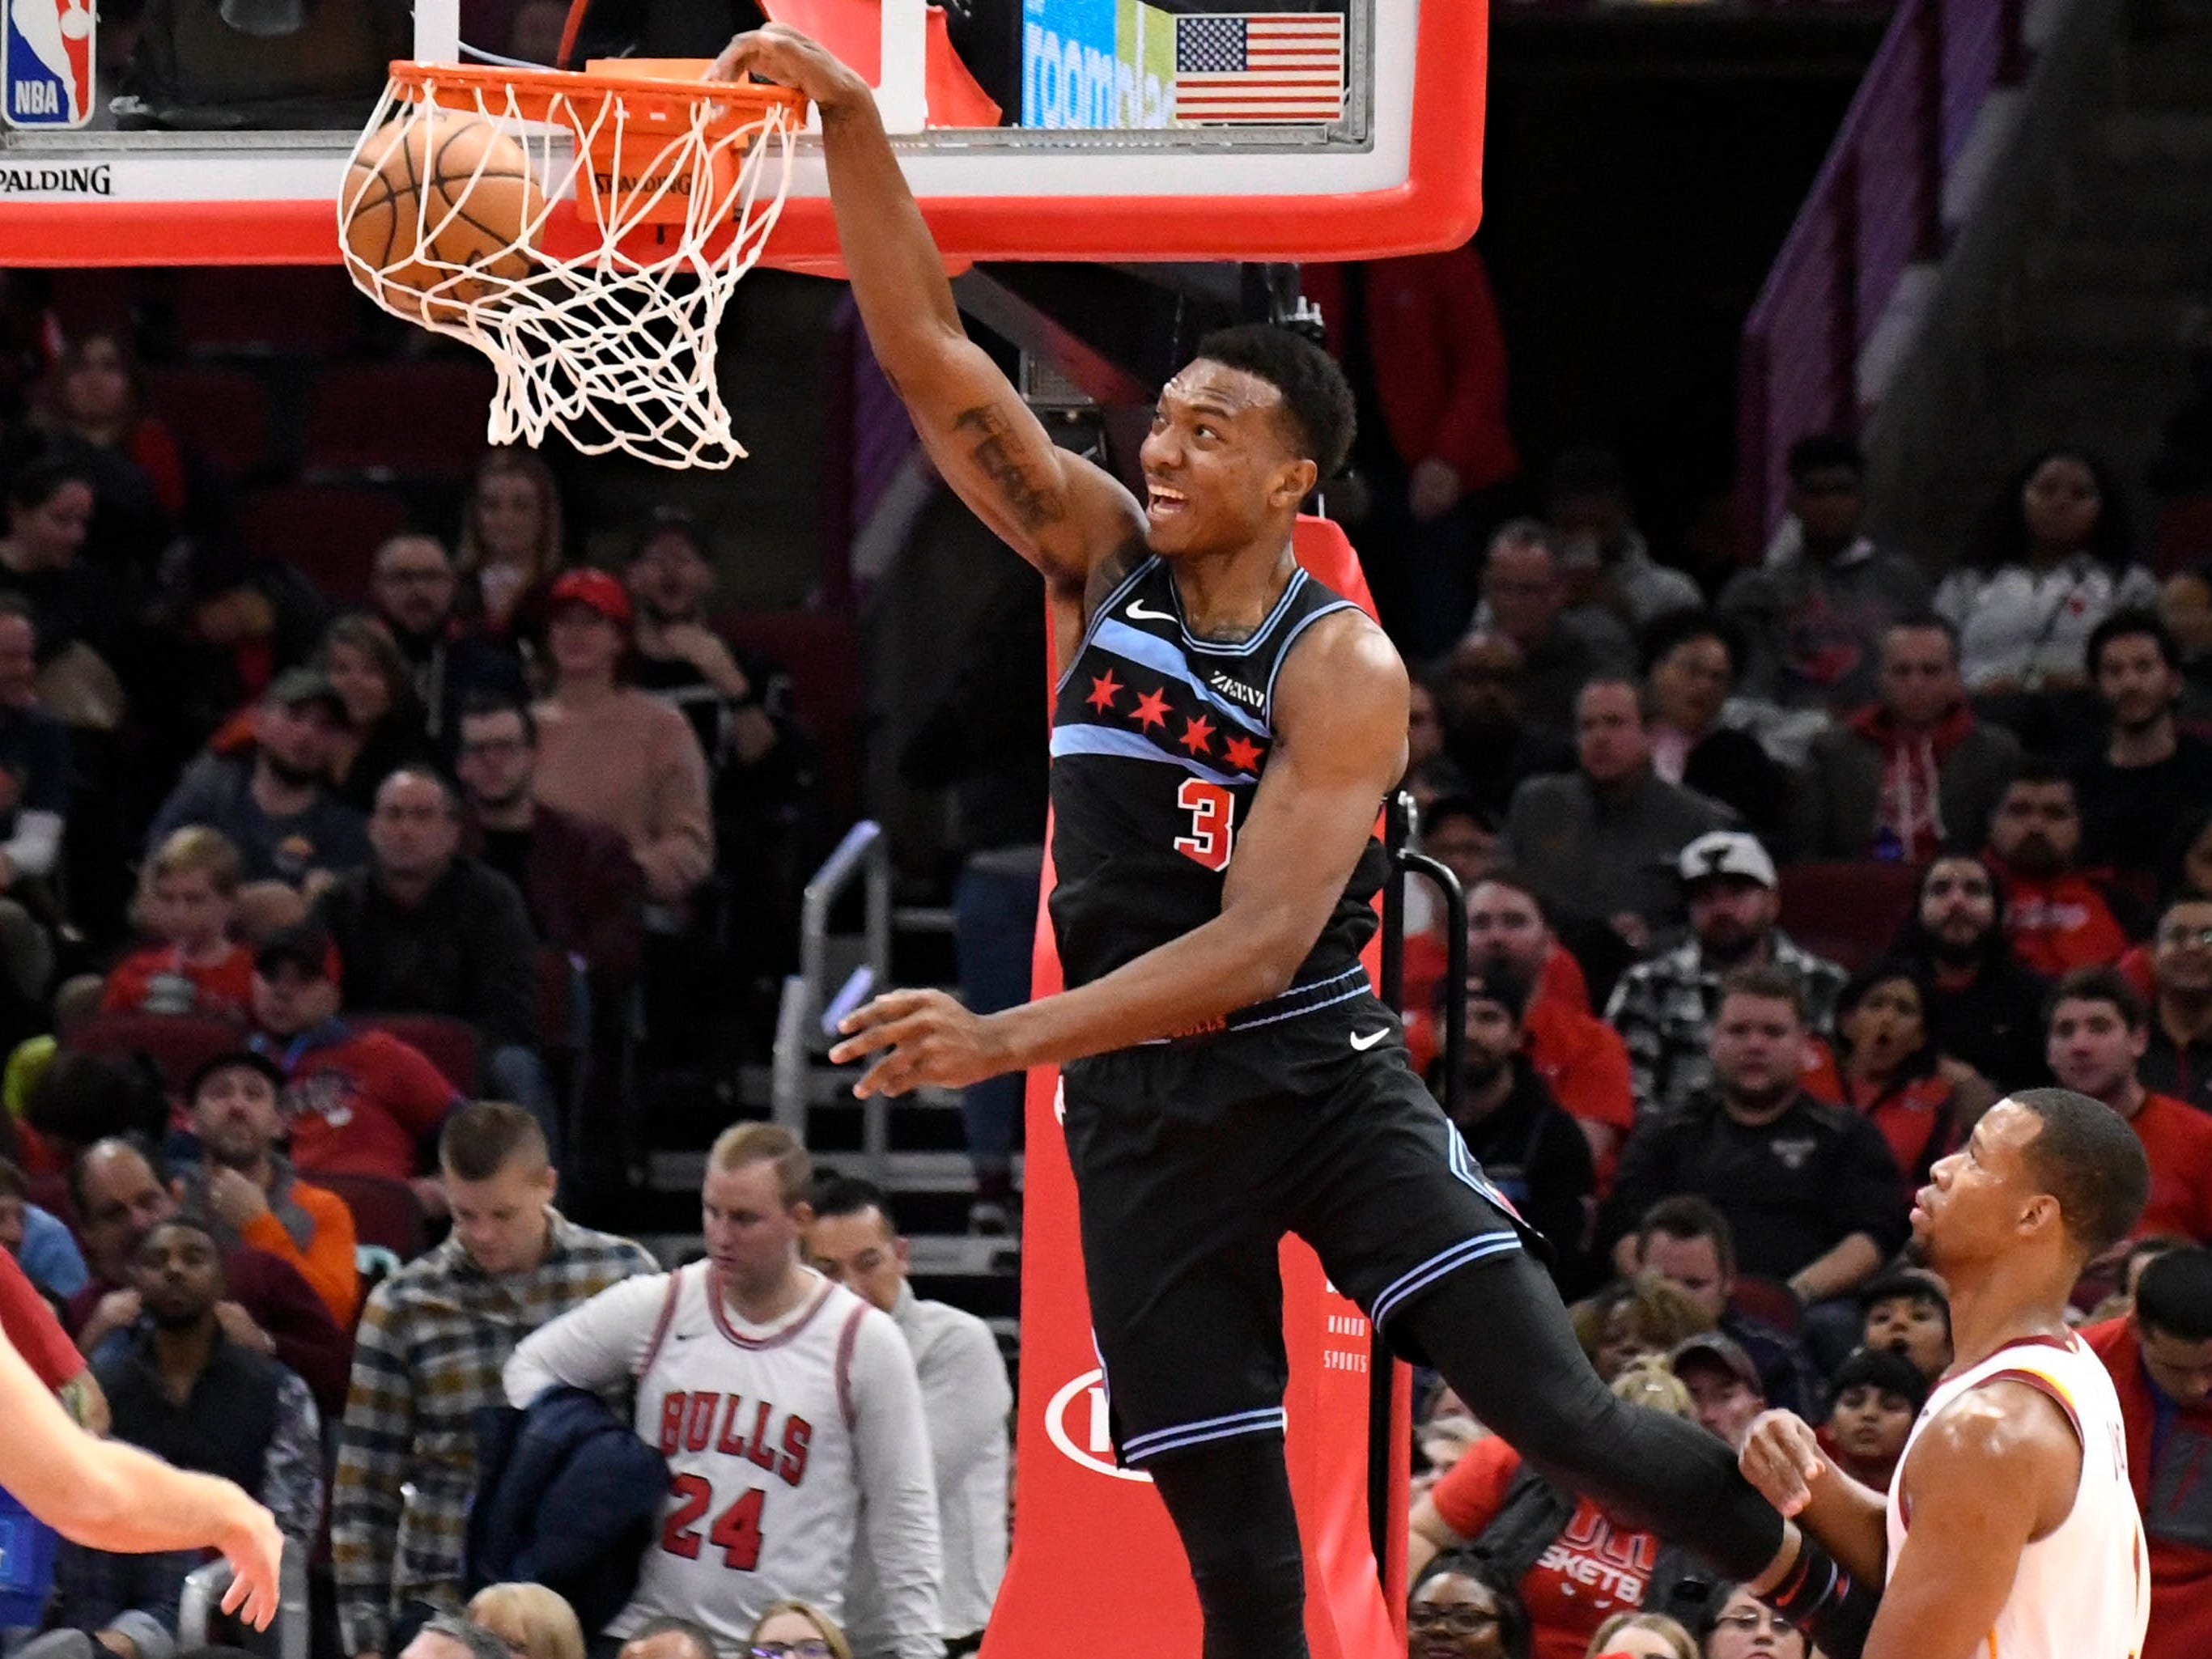 Nov. 10: Bulls rookie forward Wendell Carter Jr. finishes the one-handed jam during first half against the Cavaliers in Chicago.